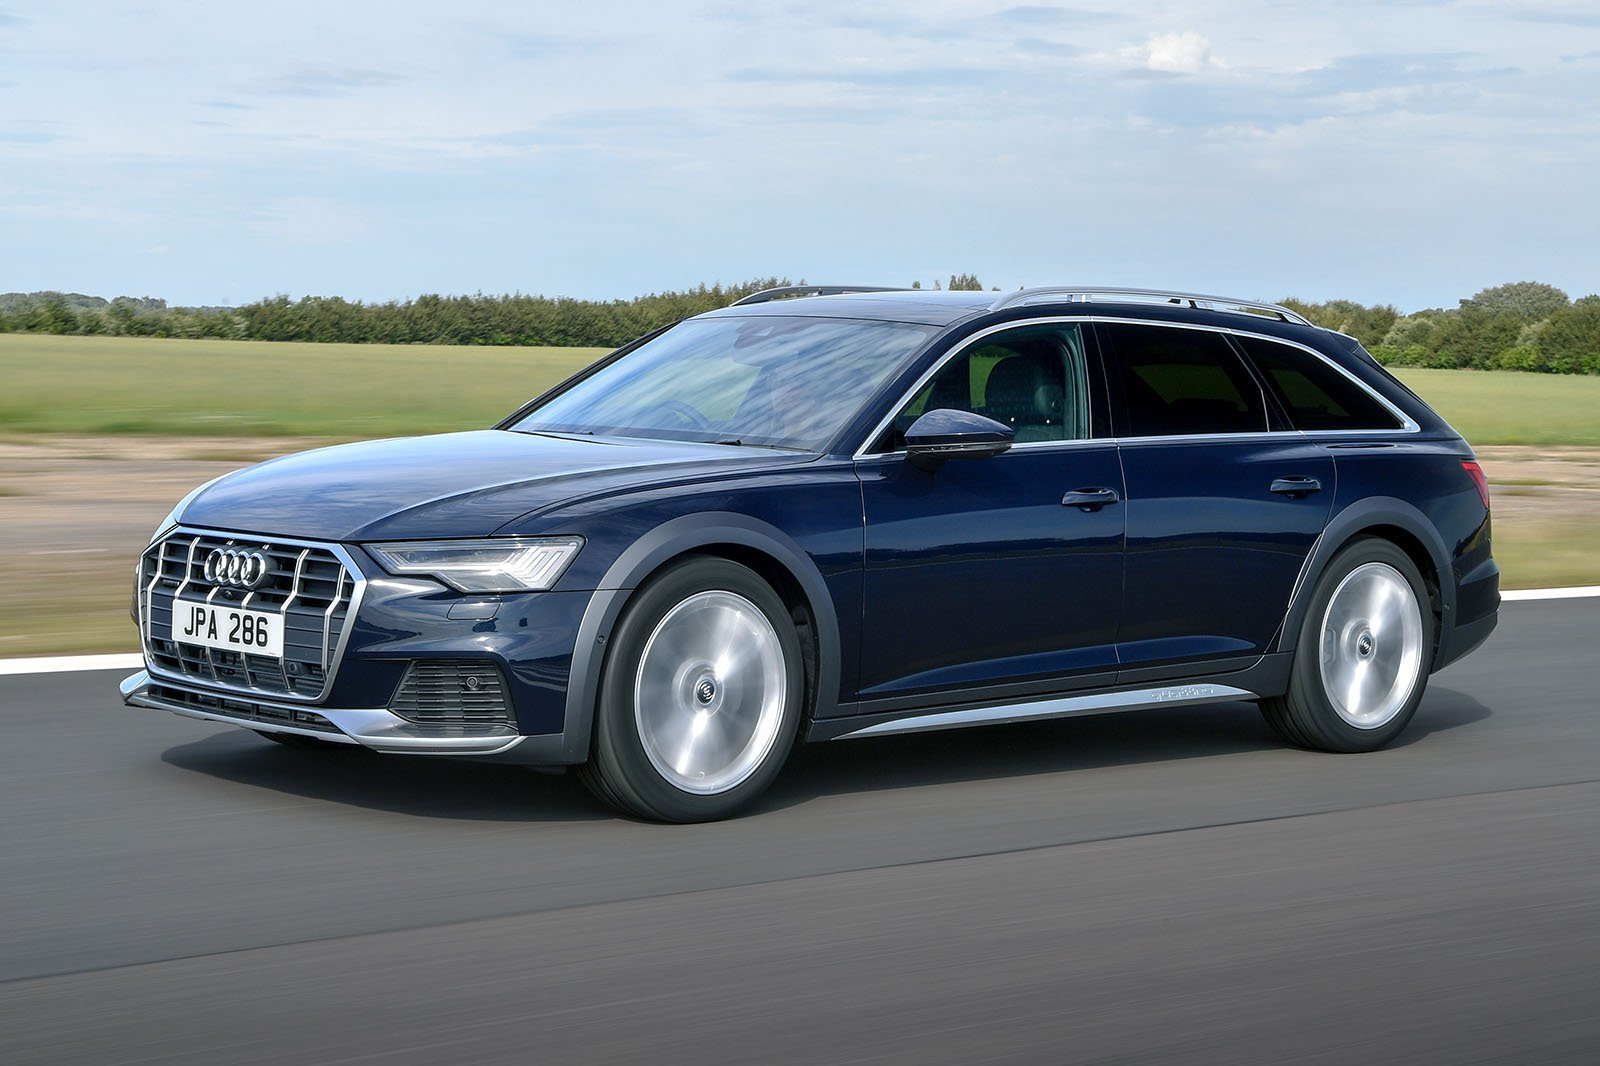 AUDI A6 ALLROAD DIESEL ESTATE